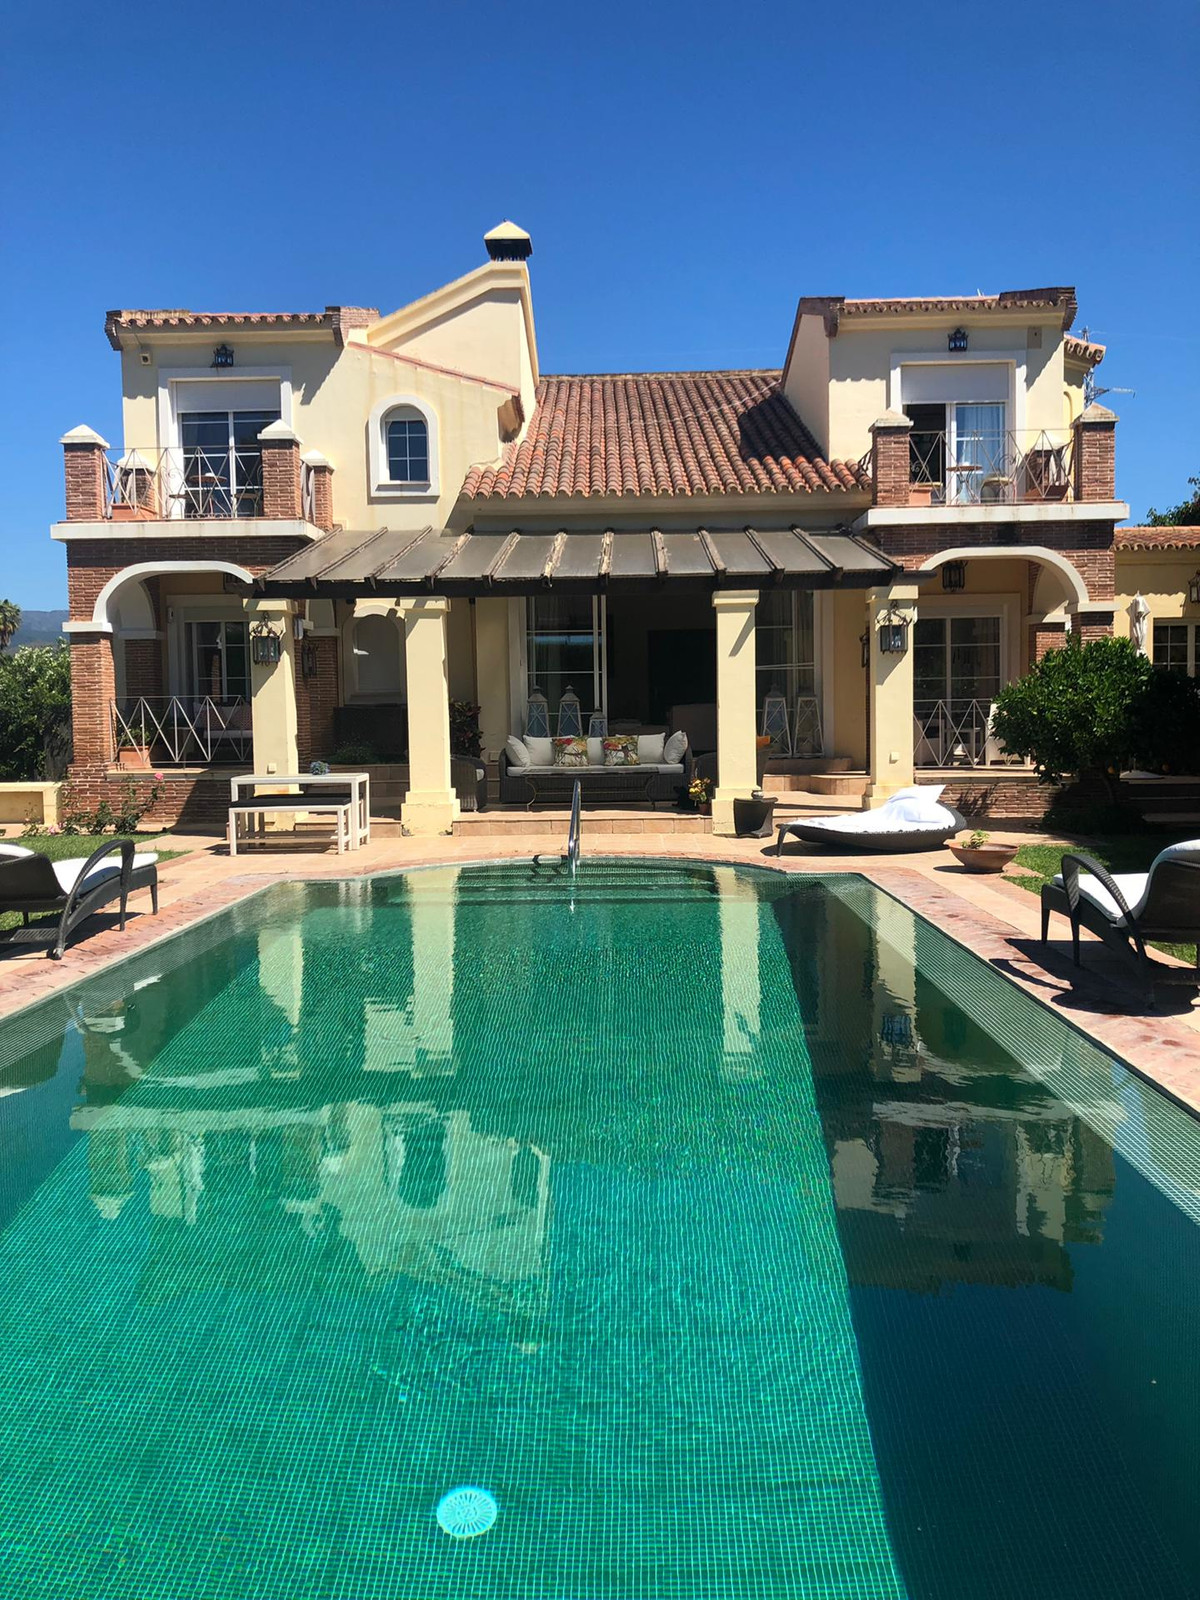 Beautiful family home, located in one of the most prestigious areas of Nueva Andalucia, in Rio Verde,Spain